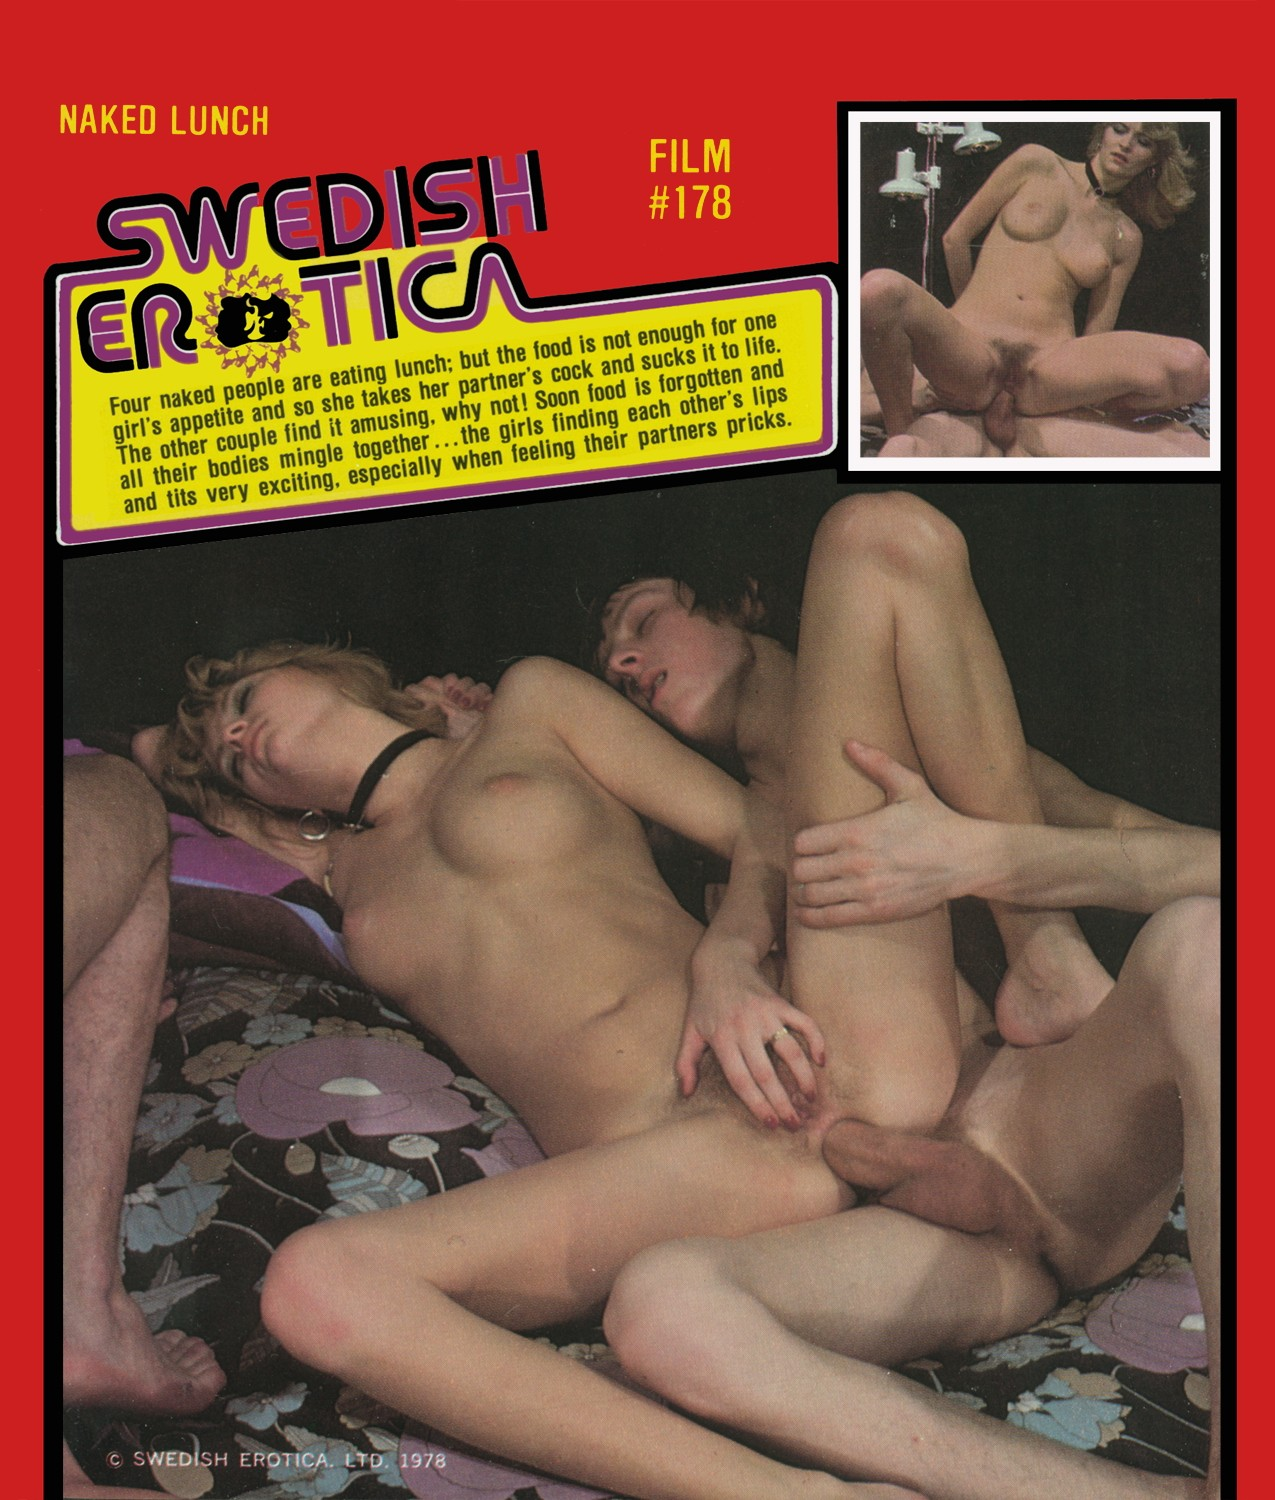 Swedish Erotica 178 - Naked Lunch